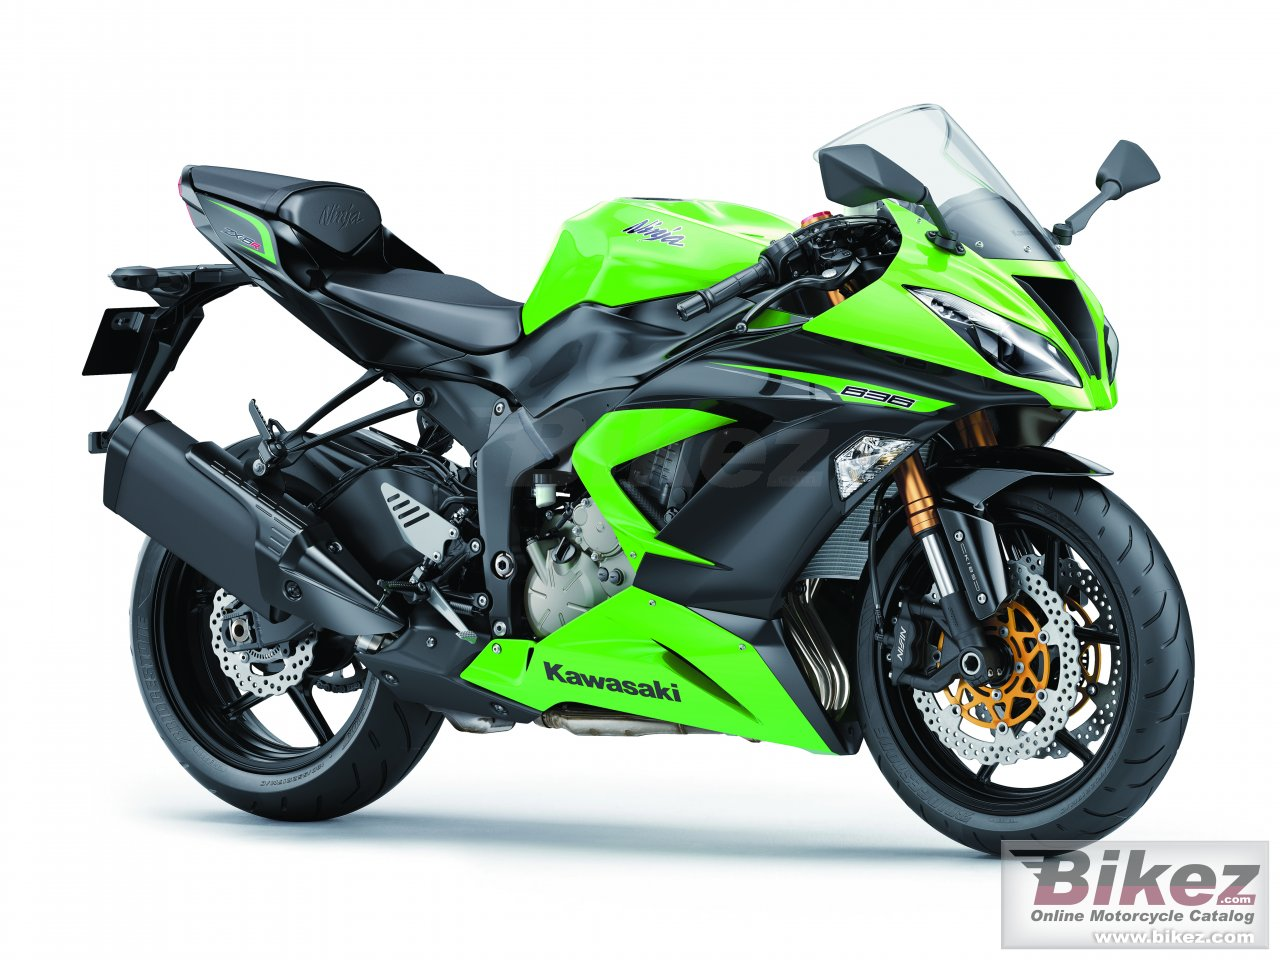 Big Kawasaki ninja zx-6r 636 picture and wallpaper from Bikez.com